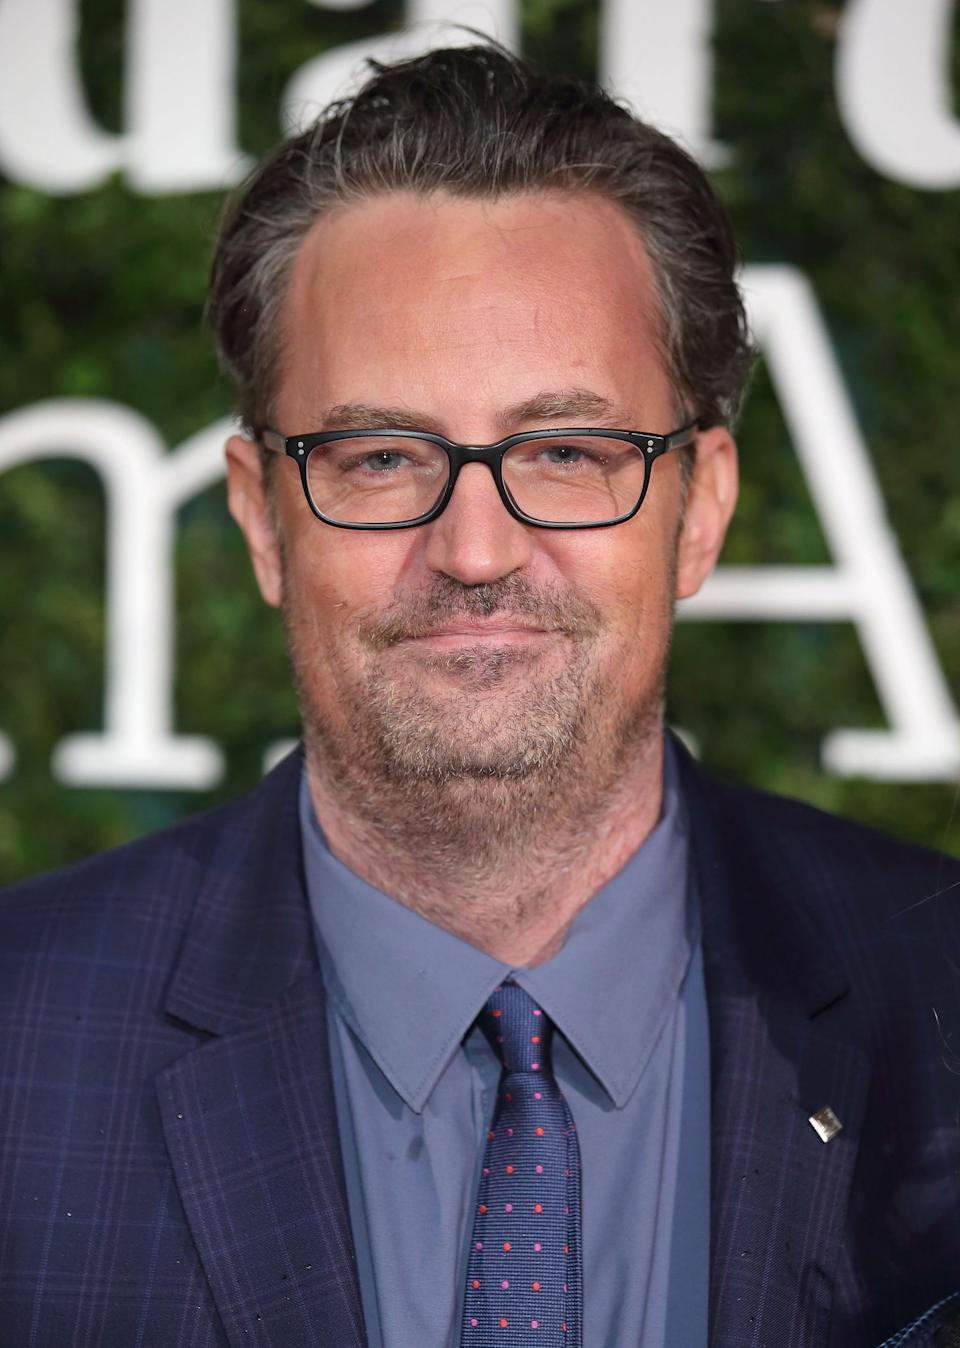 LONDON, ENGLAND - FEBRUARY 07:  Matthew Perry attends the London Evening Standard British Film Awards at Television Centre on February 7, 2016 in London, England.  (Photo by Mike Marsland/WireImage)